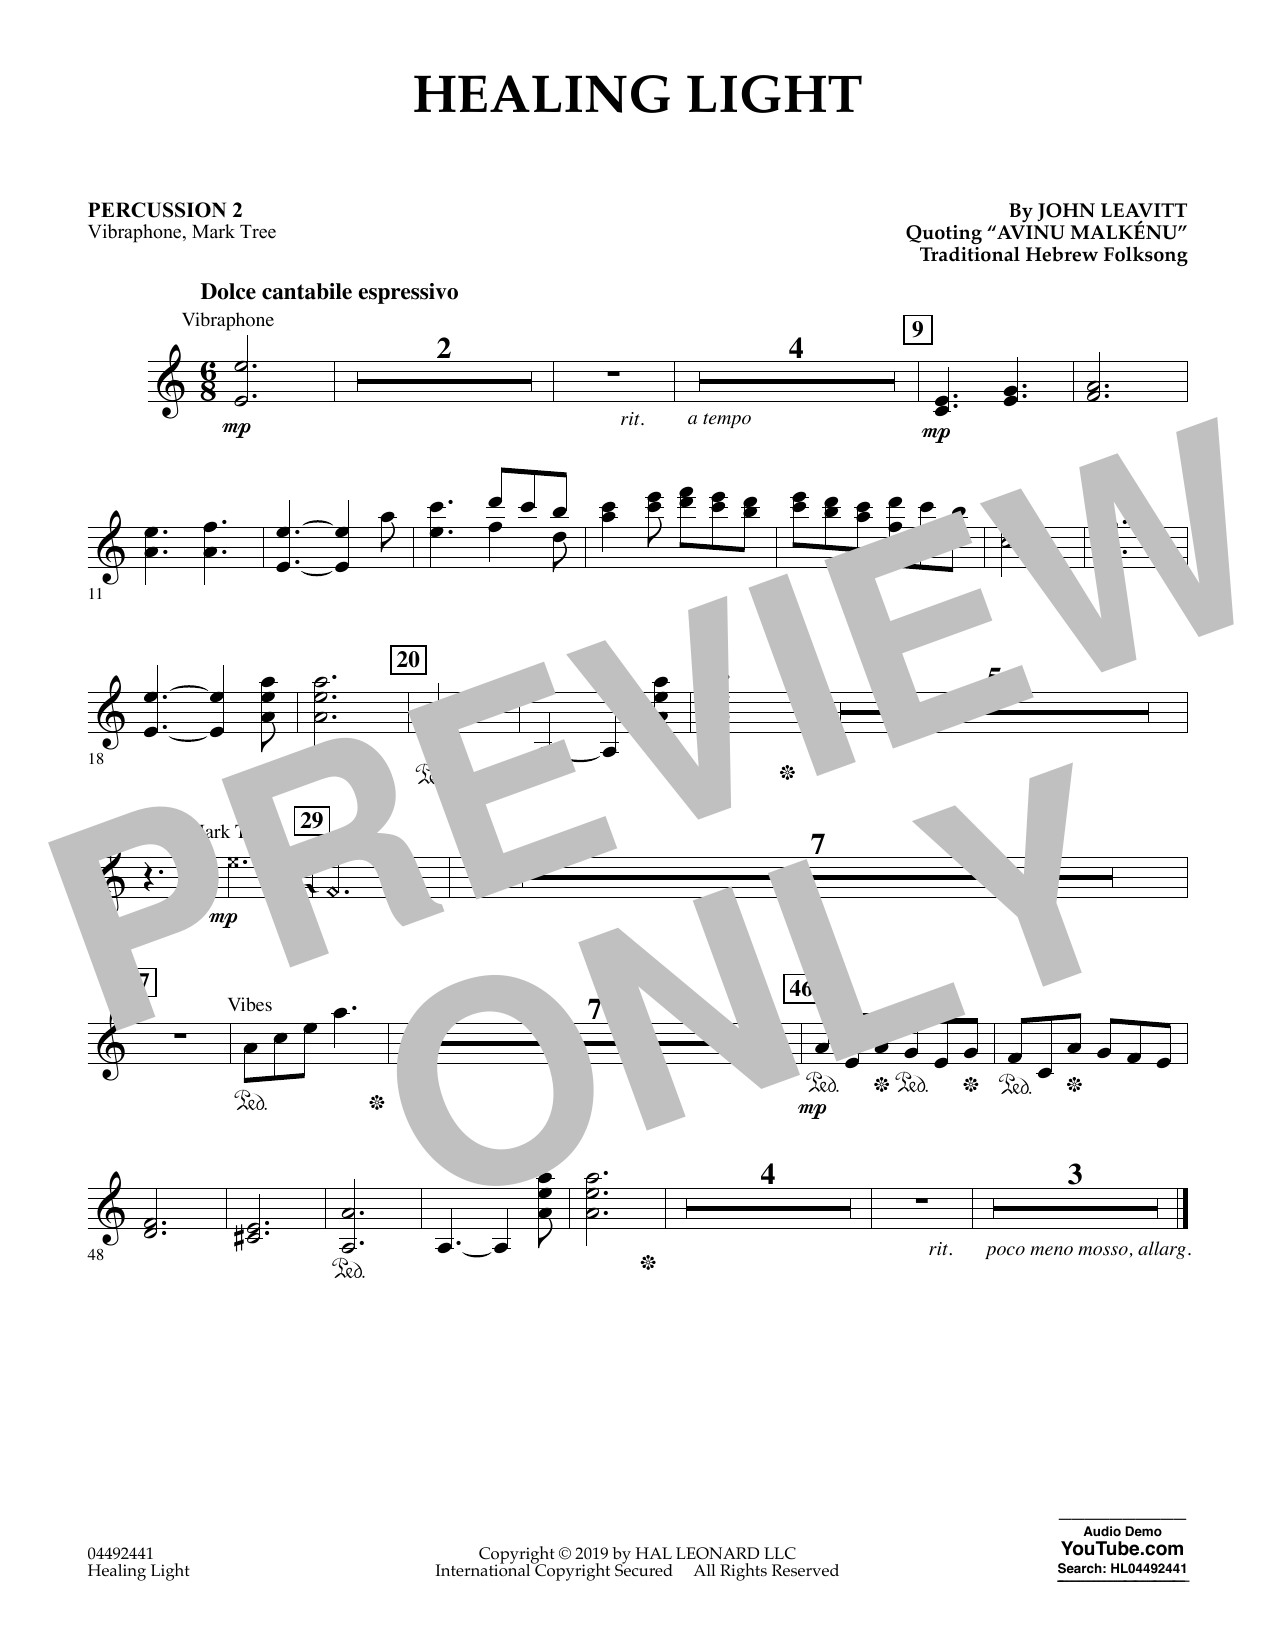 John Leavitt Healing Light - Percussion 2 sheet music preview music notes and score for Orchestra including 1 page(s)